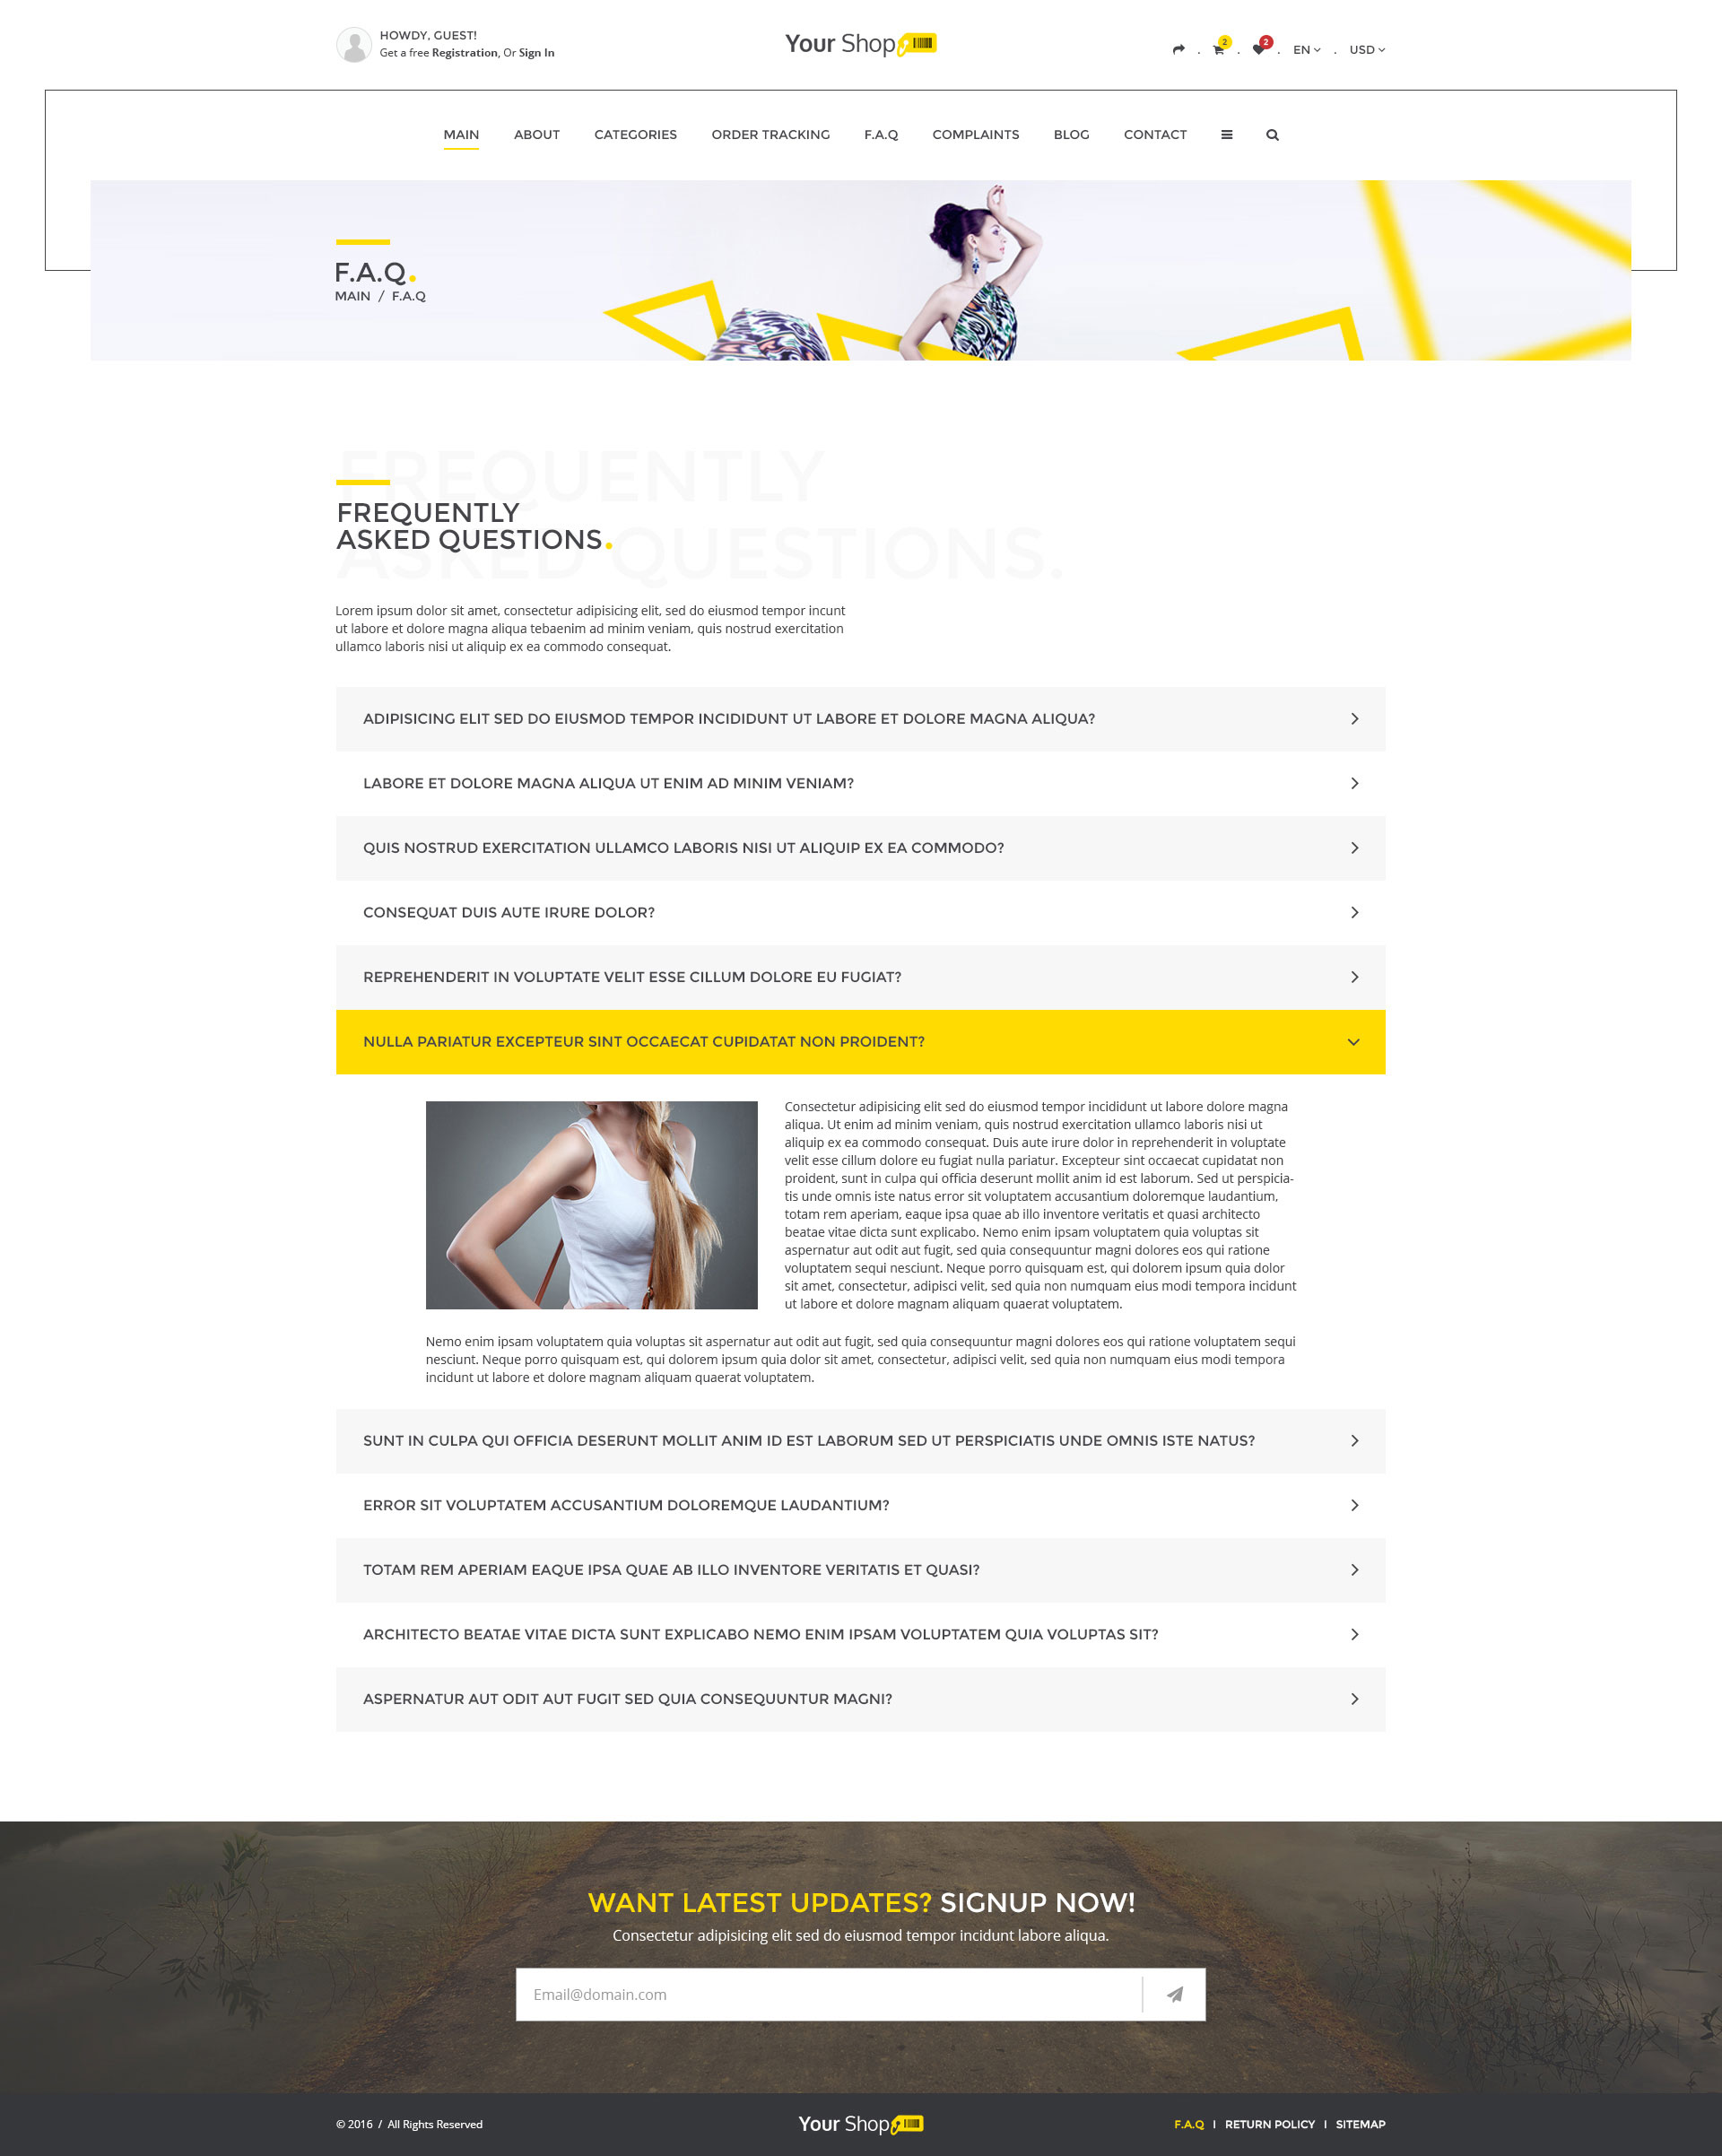 Unusual 1 Page Resume Format For Freshers Small 1 Year Experienced Java Resume Shaped 1 Year Experienced Software Developer Resume Sample 10 Steps Writing Resume Young 10 Tips To Write A Good Resume Brown1500 Claim Form Template Your Shop   The Complete And Big Multipurpose ECommerce Shop PSD ..